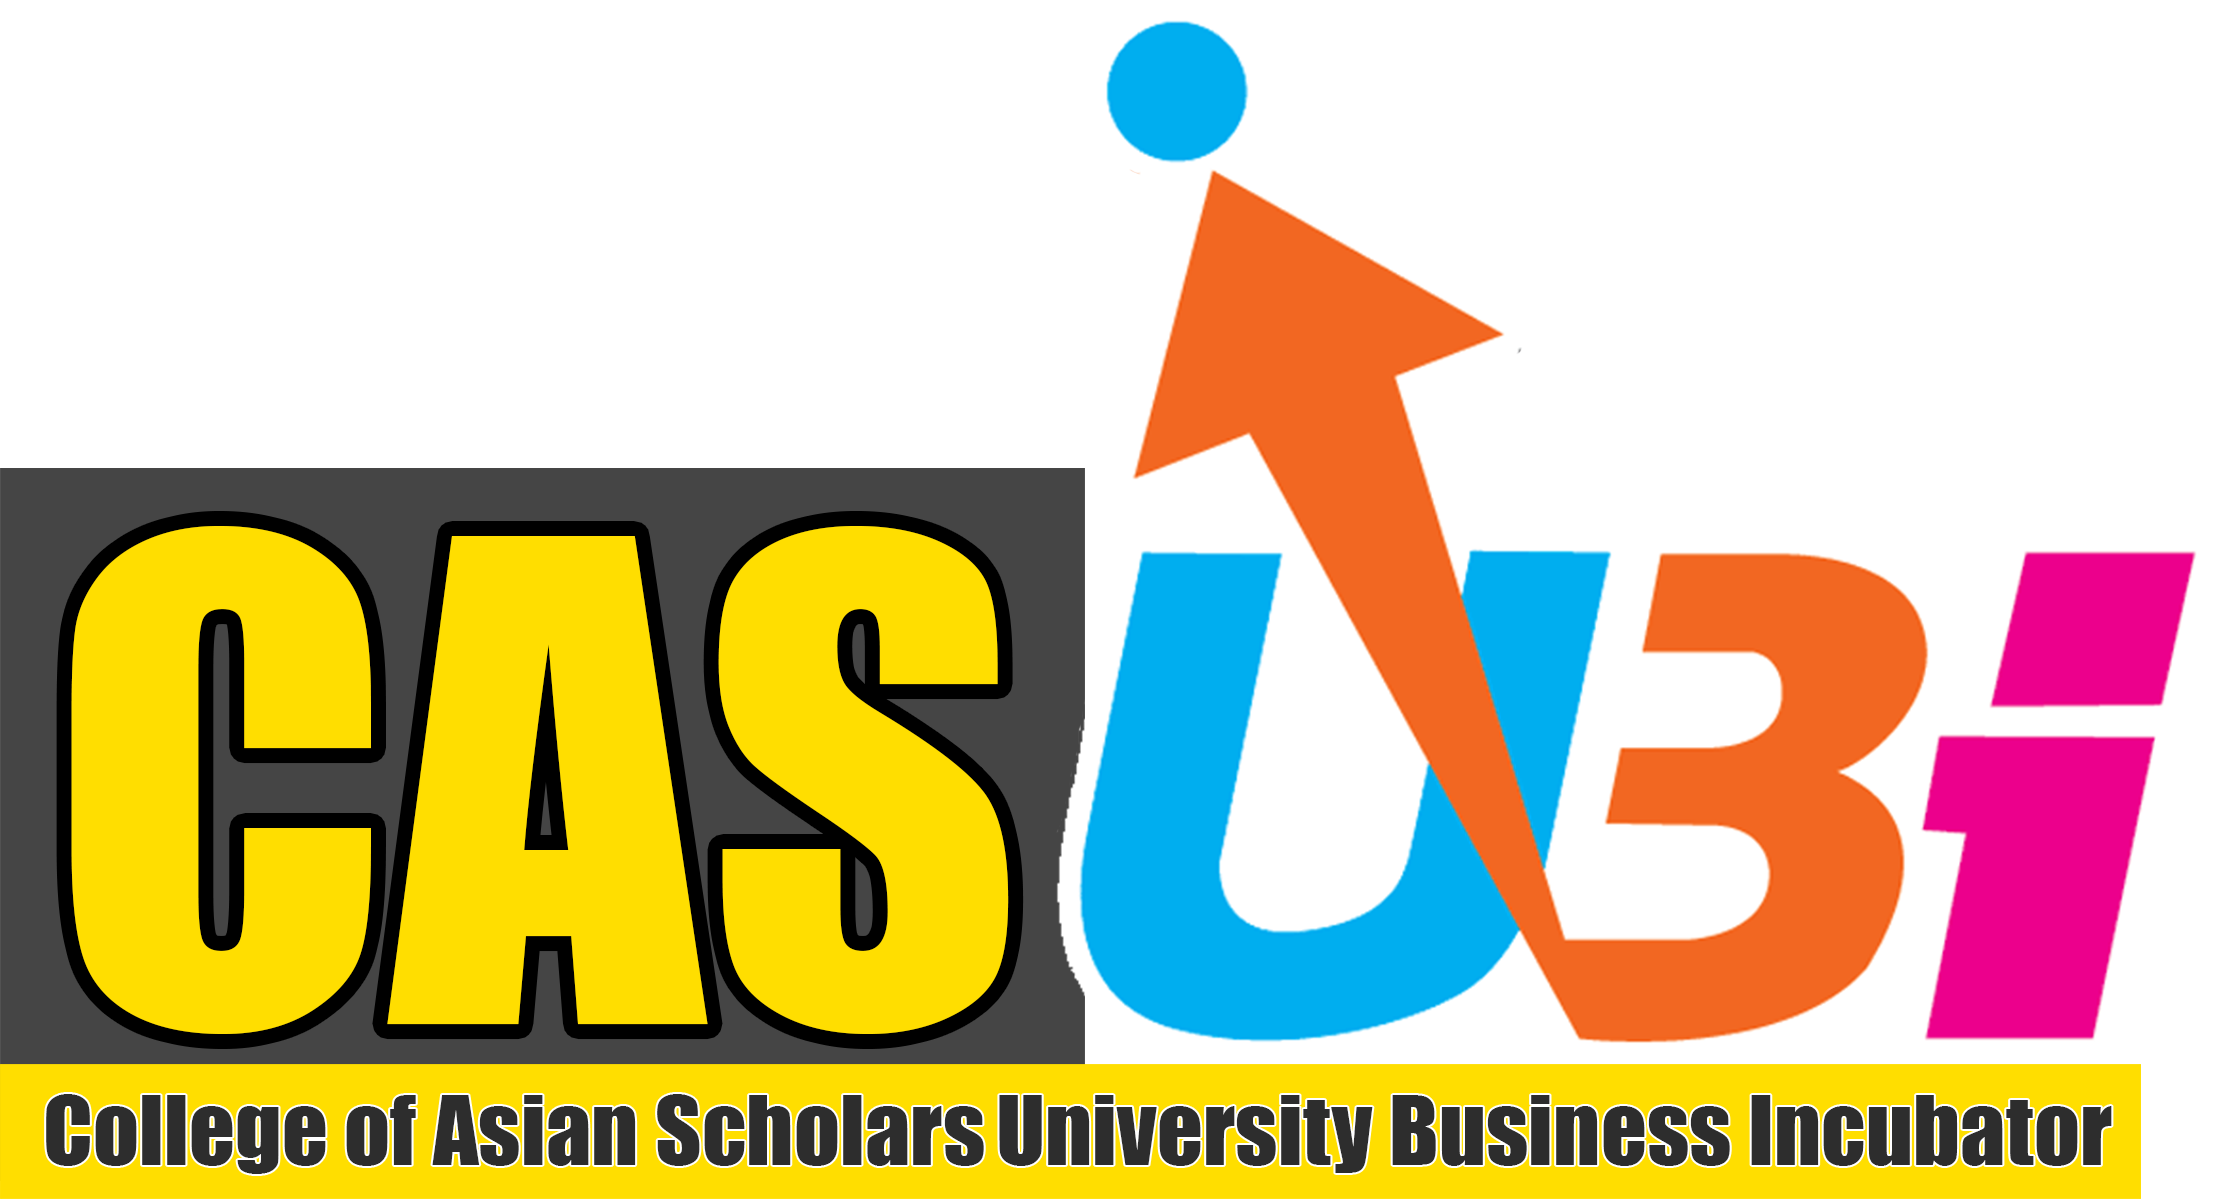 CAS University Business Incubator